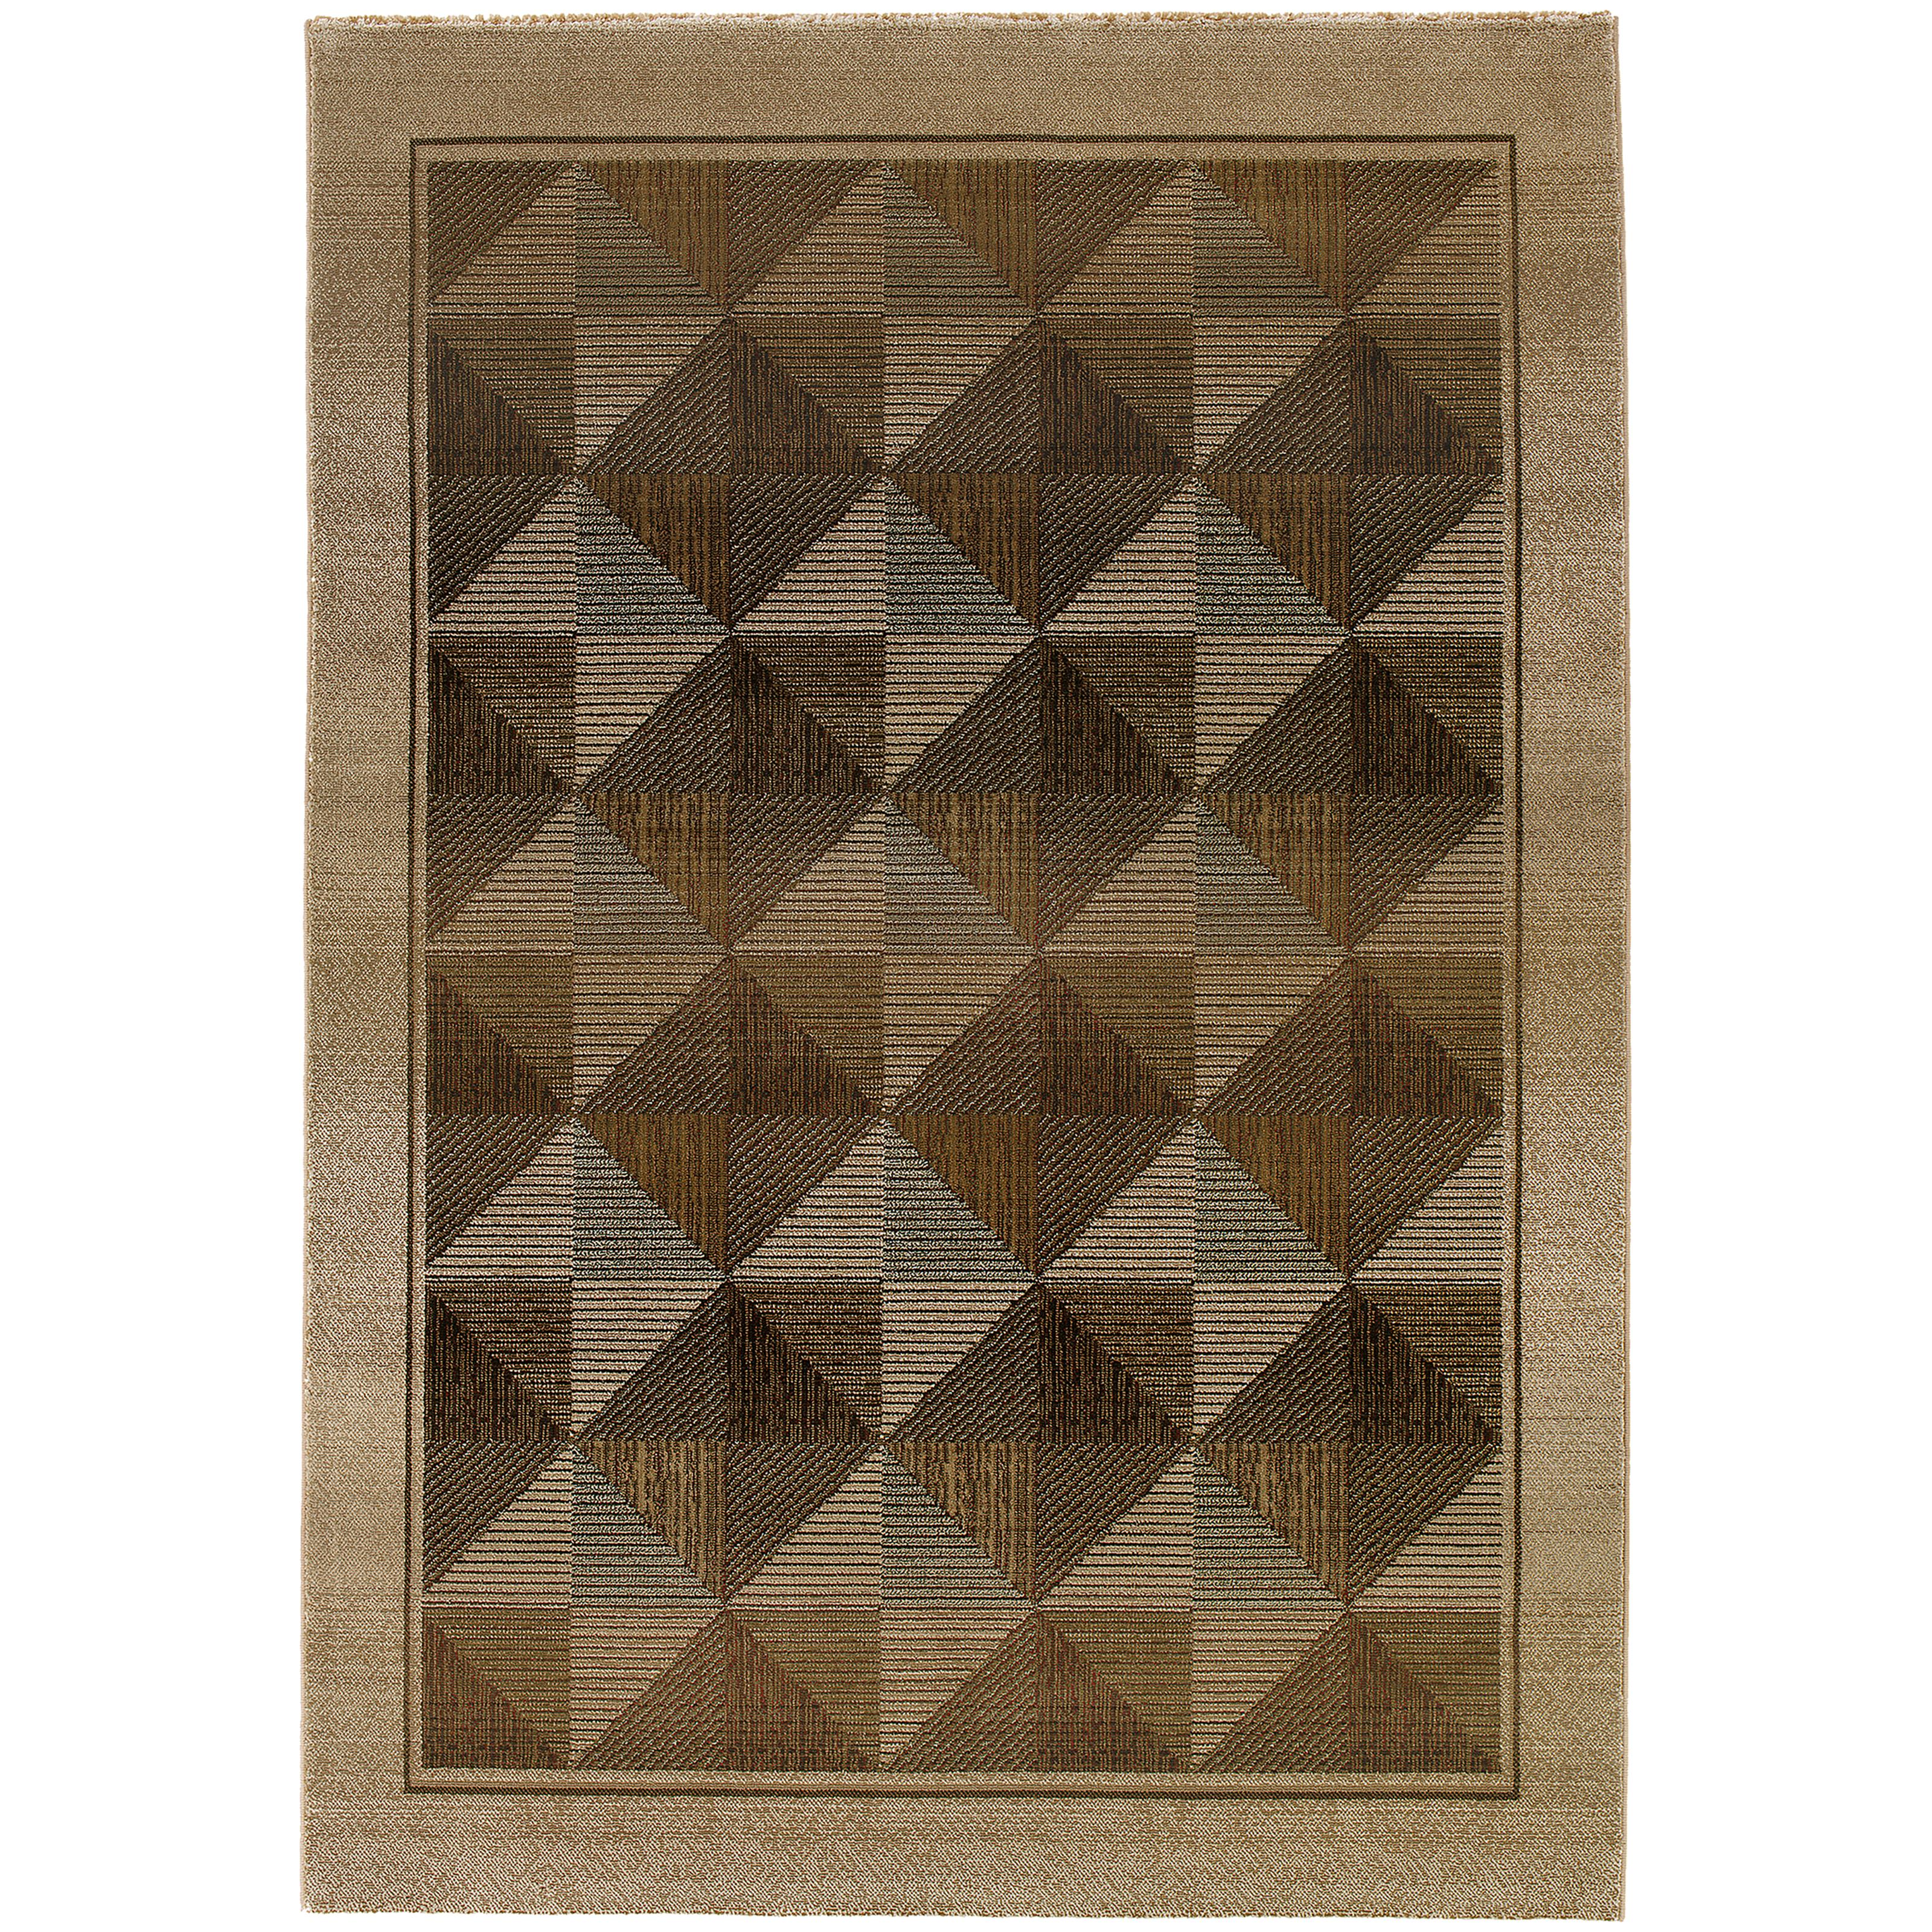 "Oriental Weavers Generations 9' 9"" X 12' 2"" Rug - Item Number: G252J1300380ST"